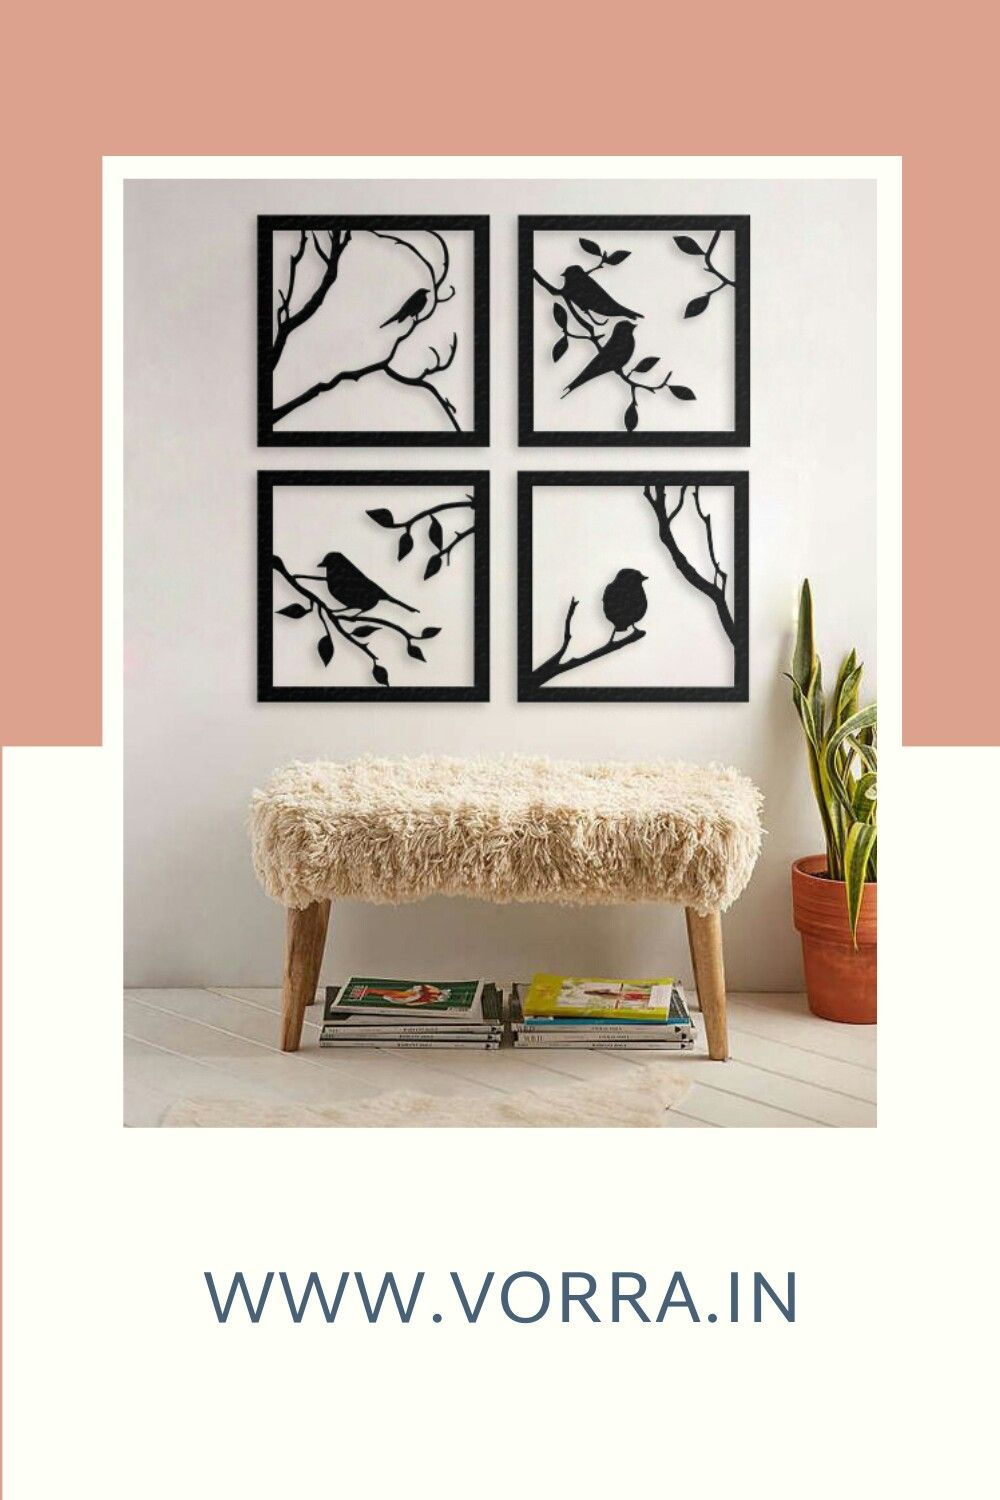 Beautifully handcrafted chirping birds metal wall art for your favourite space.  Get yours customised now! WWW.VORRA.IN  #metalart #metal #localart #artisan #vorraindia #vorra #decor #rakhigiftsforsister #birdslovers #churpingbirds #friendship #metalwork #handcrafted #homedecor #diyhomedecor #homeandlifestyle